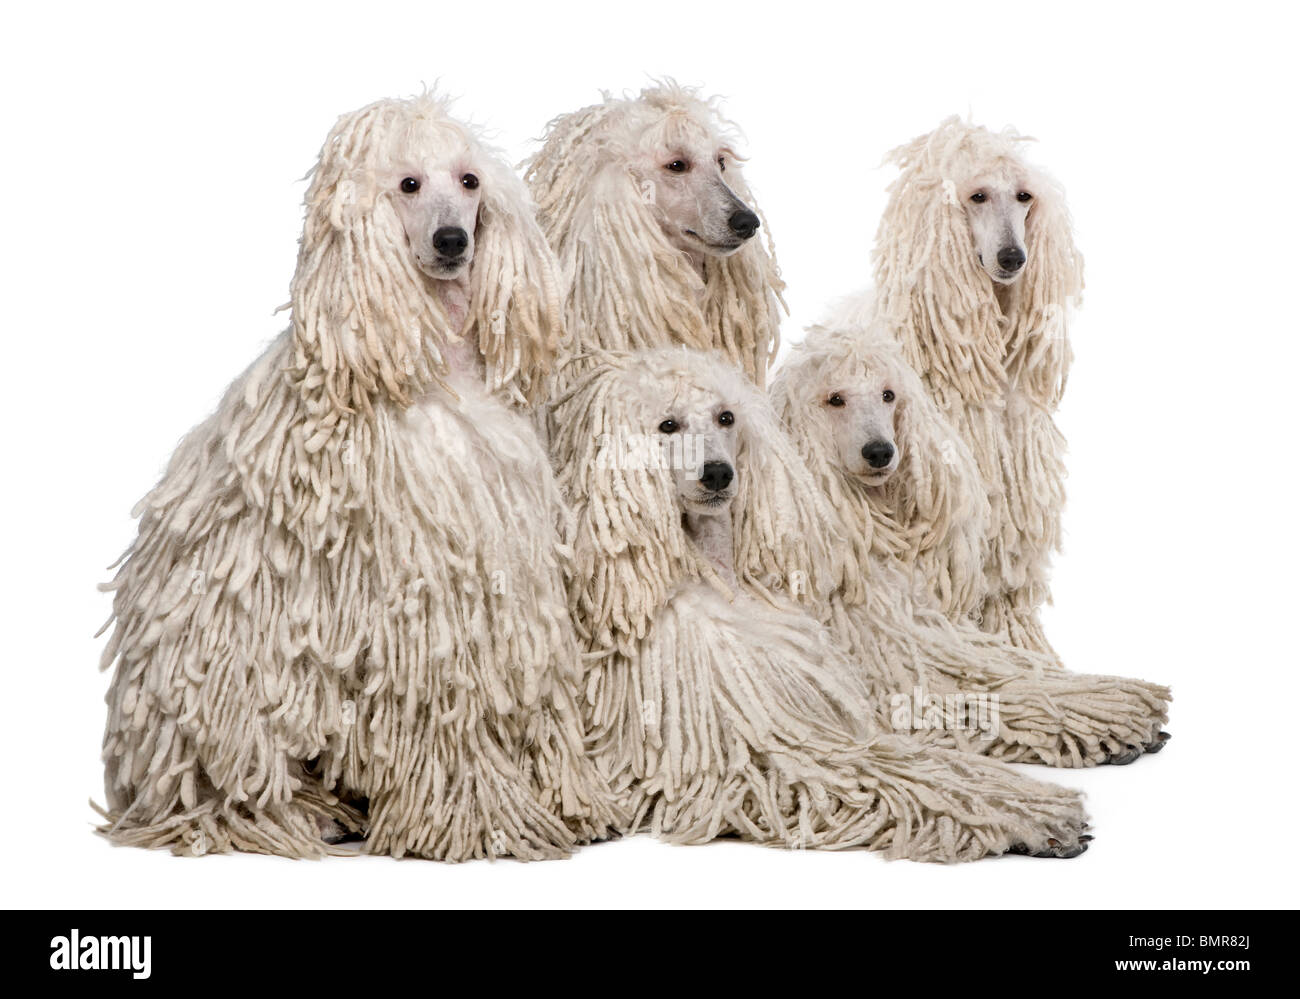 White Corded standard Poodles sitting against white background - Stock Image